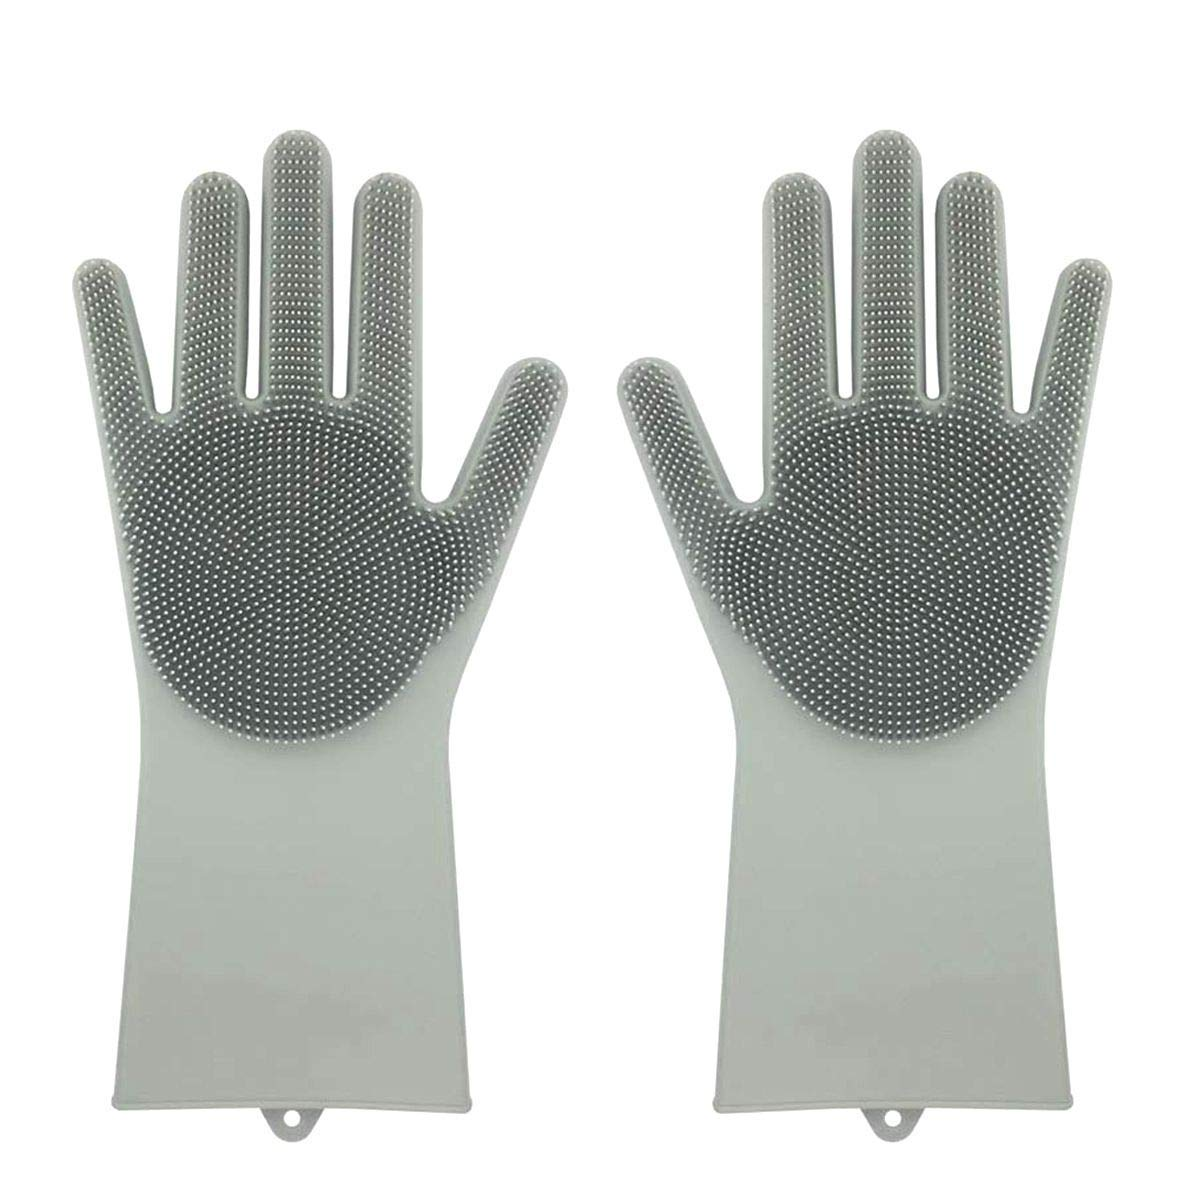 Multi-Purpose Silicone Scrubber Gloves (Worldwide Shipping)